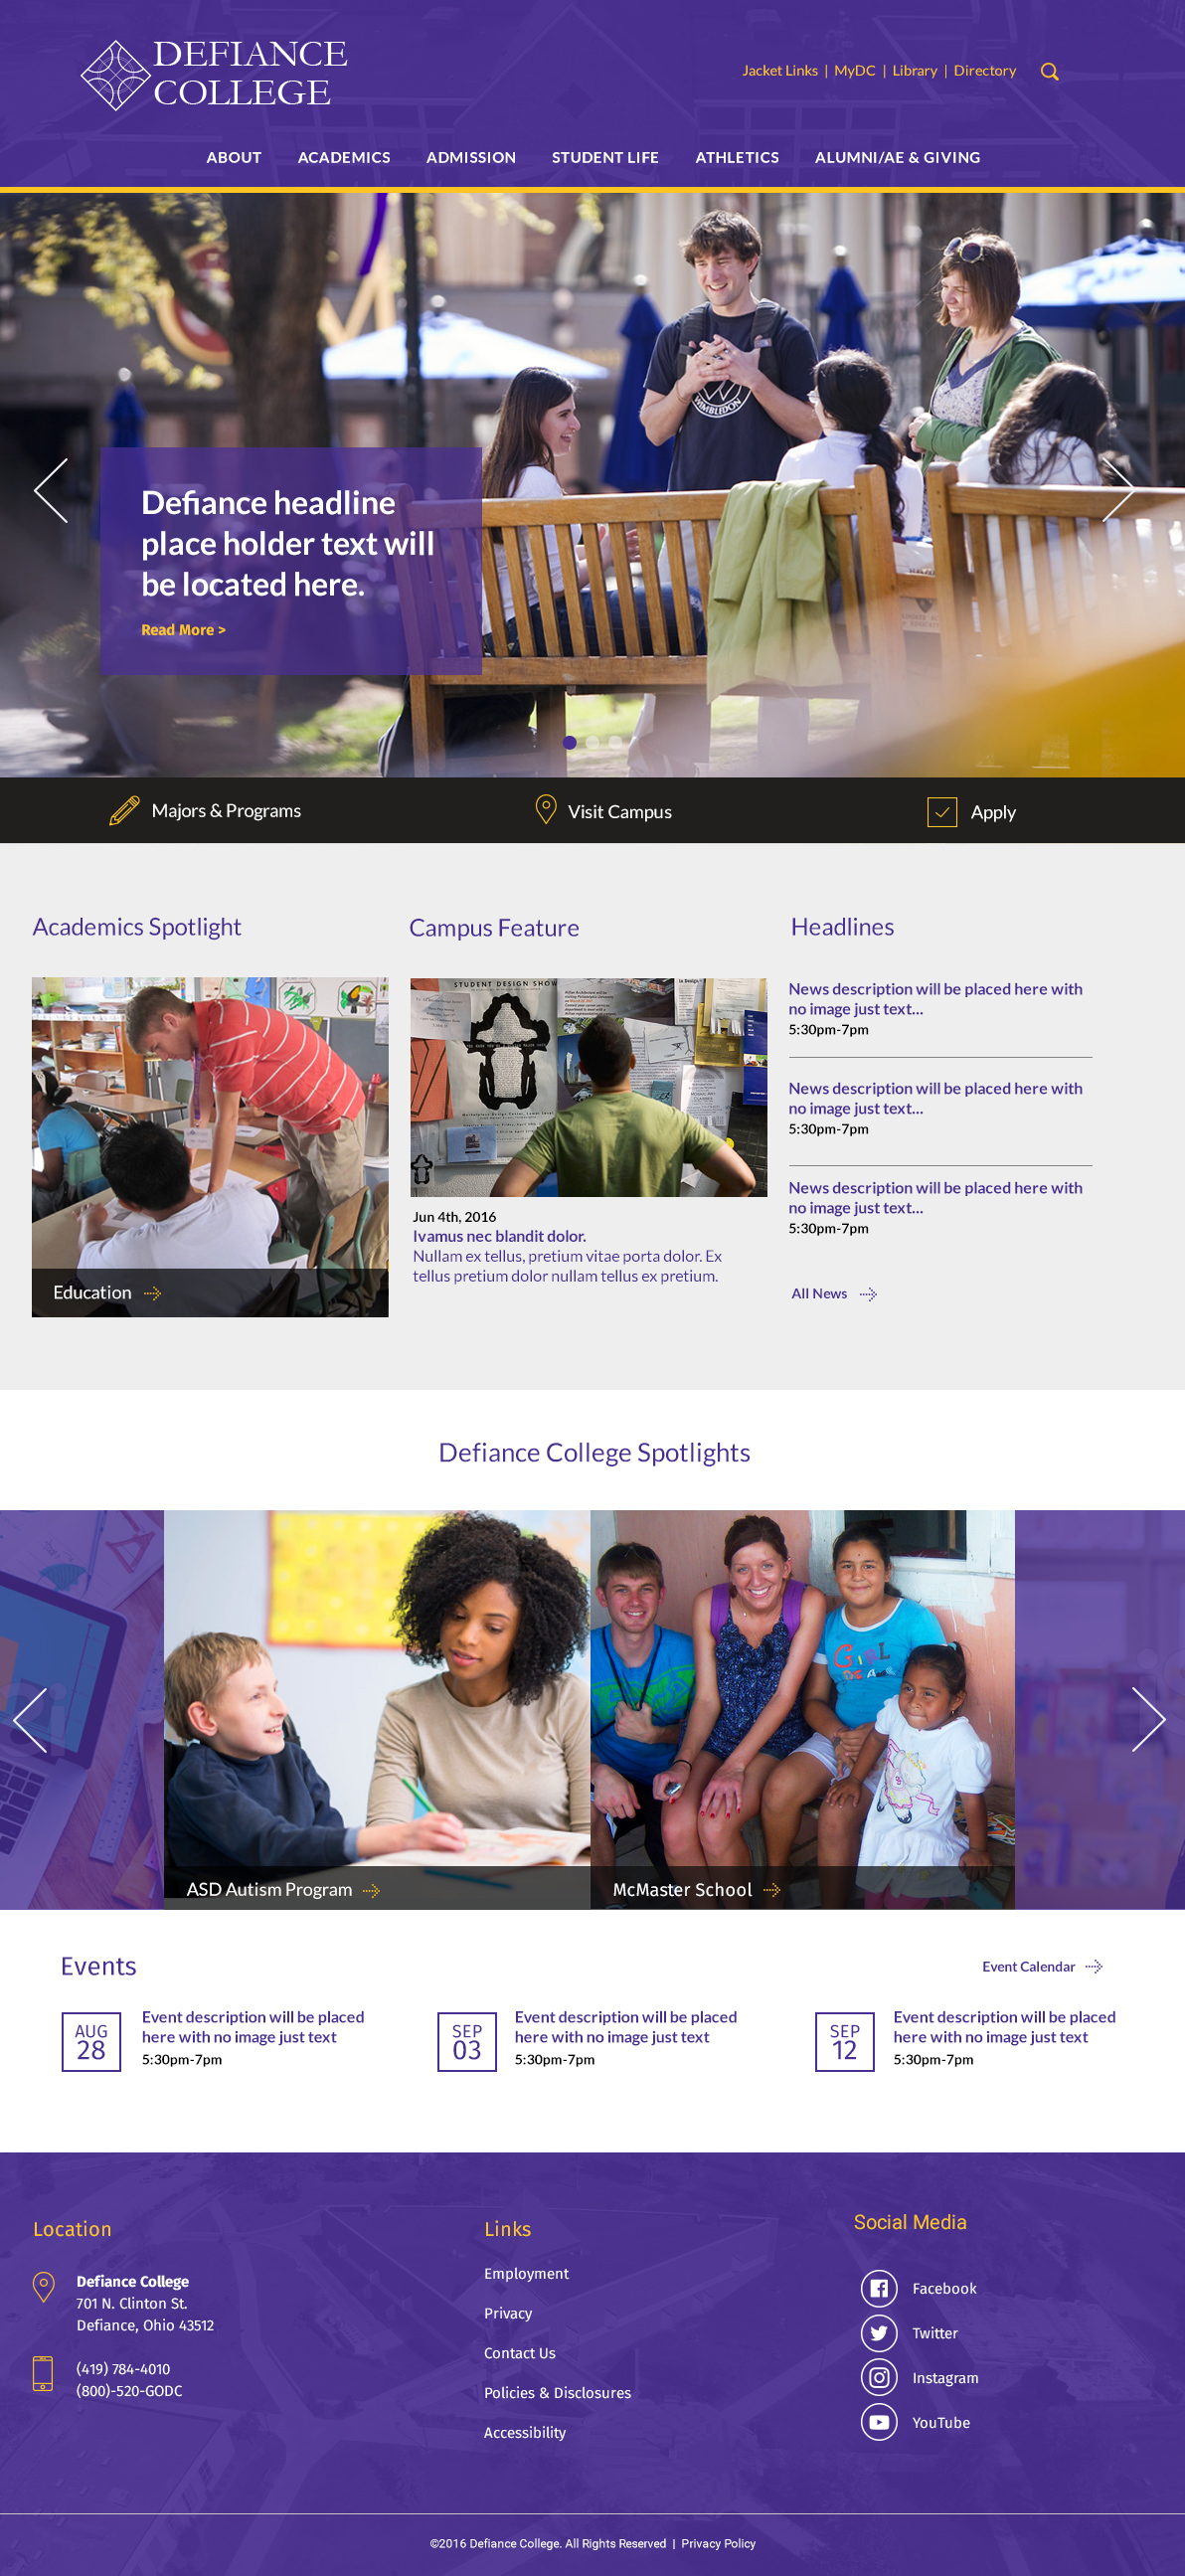 defiancecollege-homepage-tier-1-1170-design2a